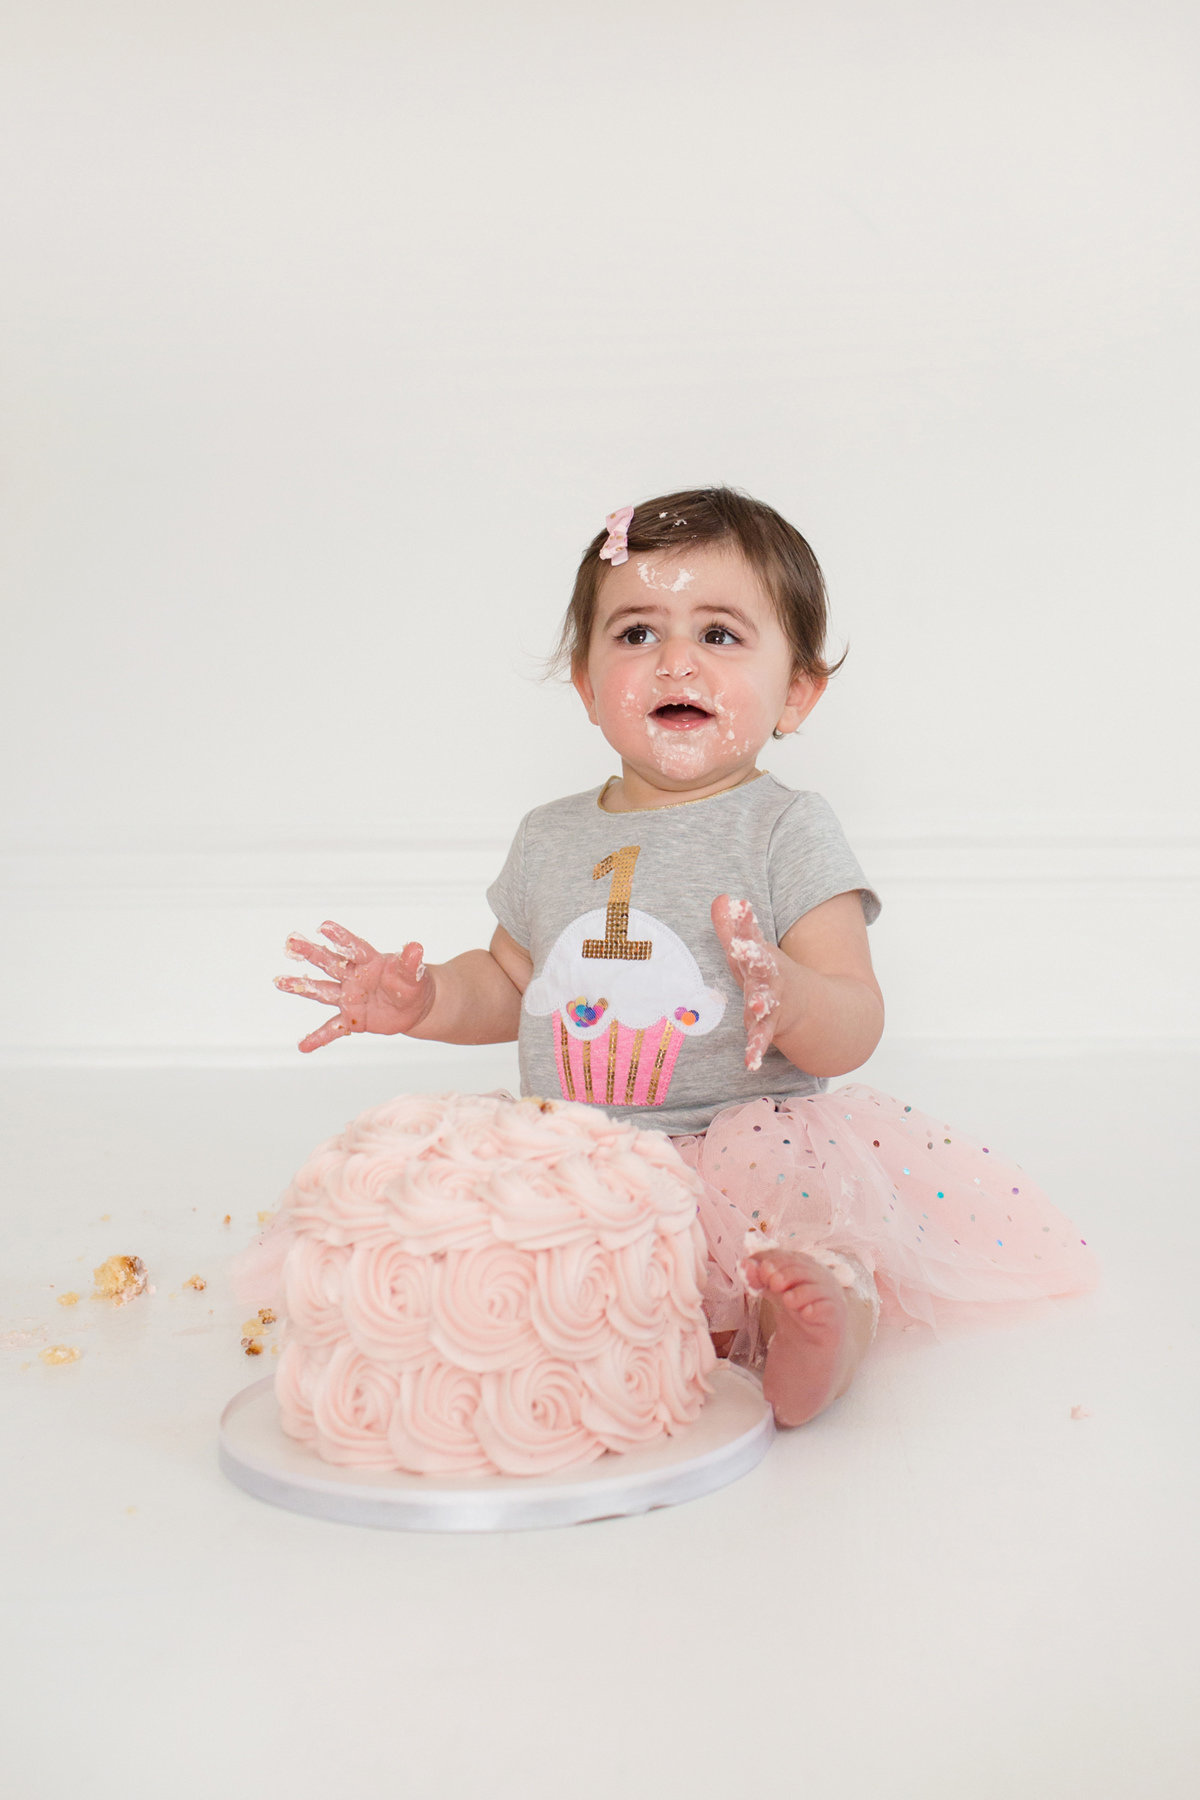 St-Louis-Studio-Child-Photographer-Cake-Smash-1-year-old-Sheth_61